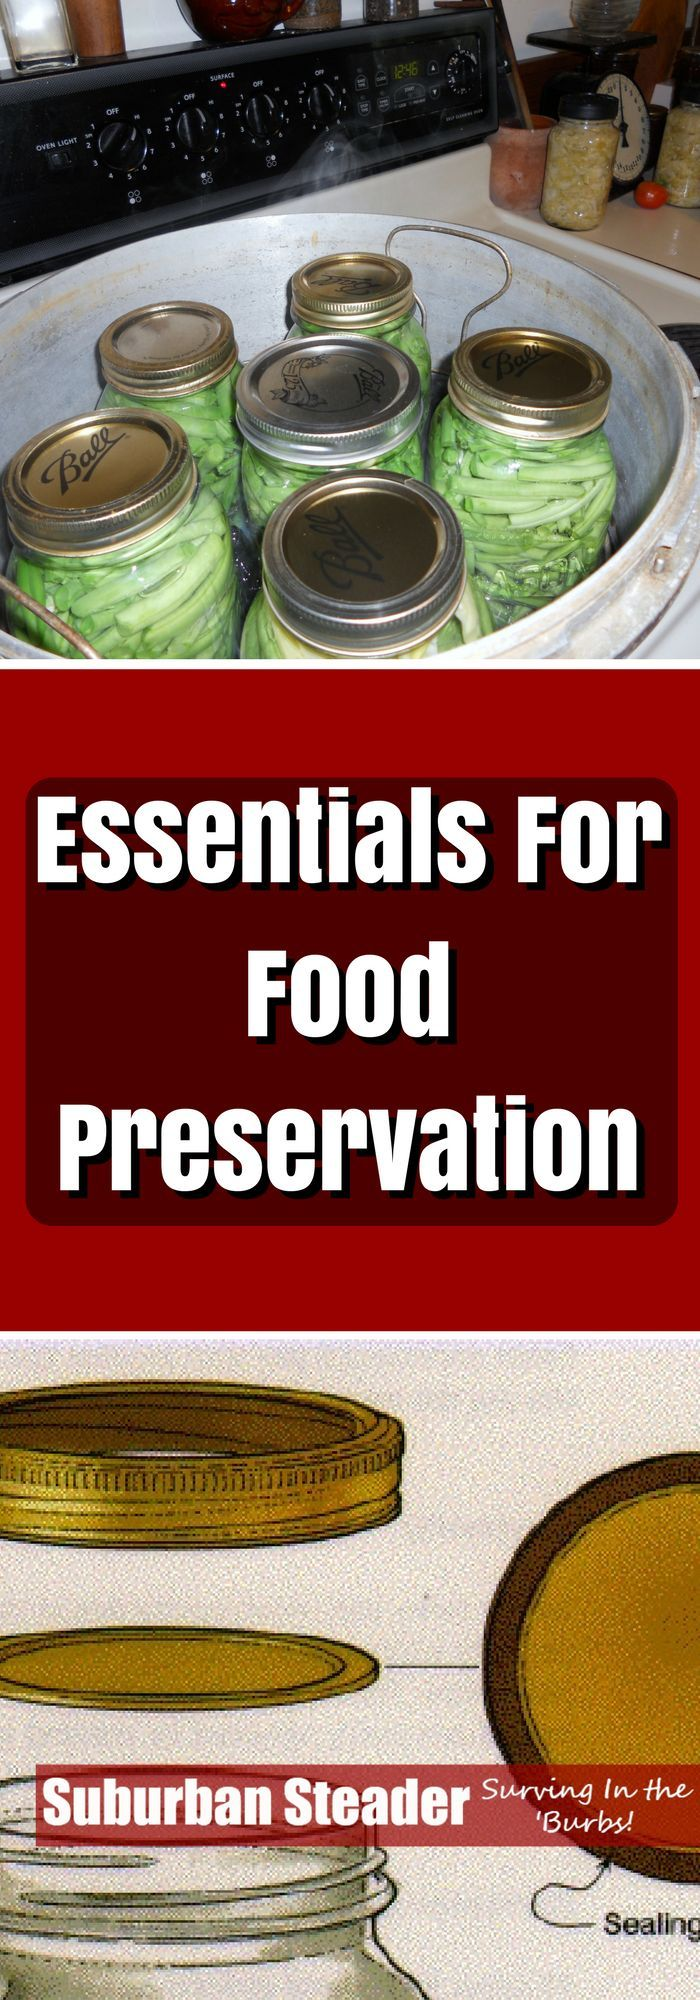 Want to get into food preservation but don't know what canning equipment to get? Come on in - we'll walk you through it!